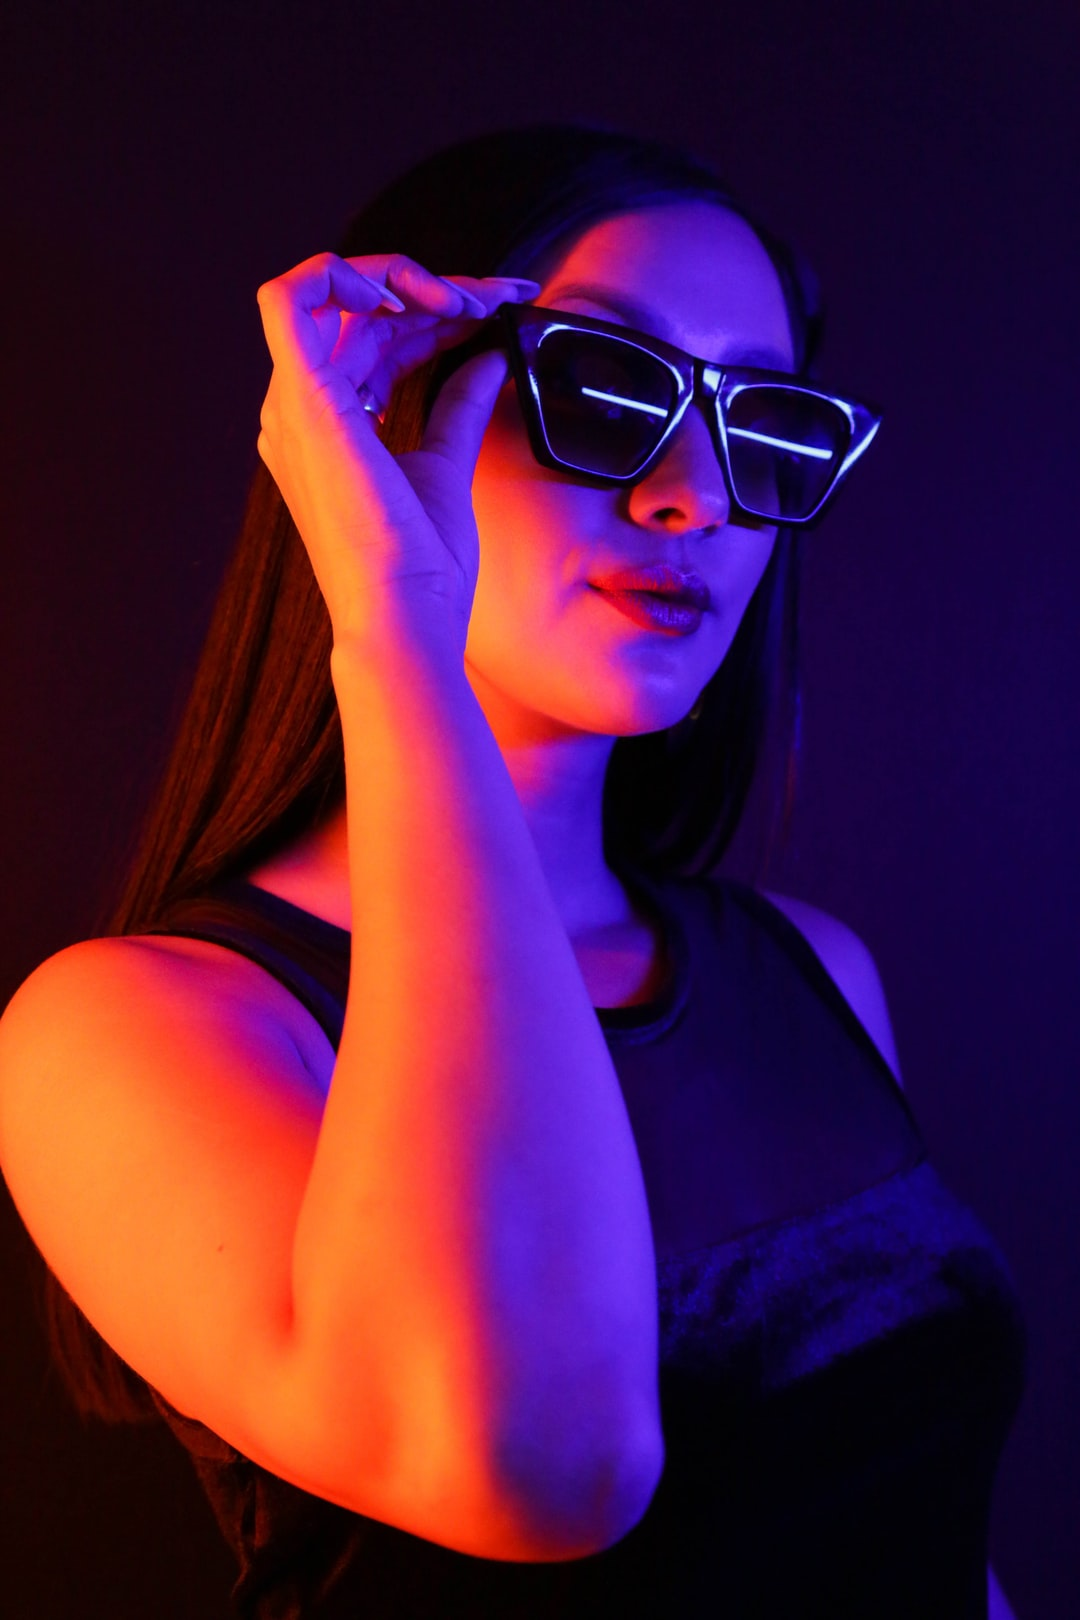 Woman in black dress with sun glasses